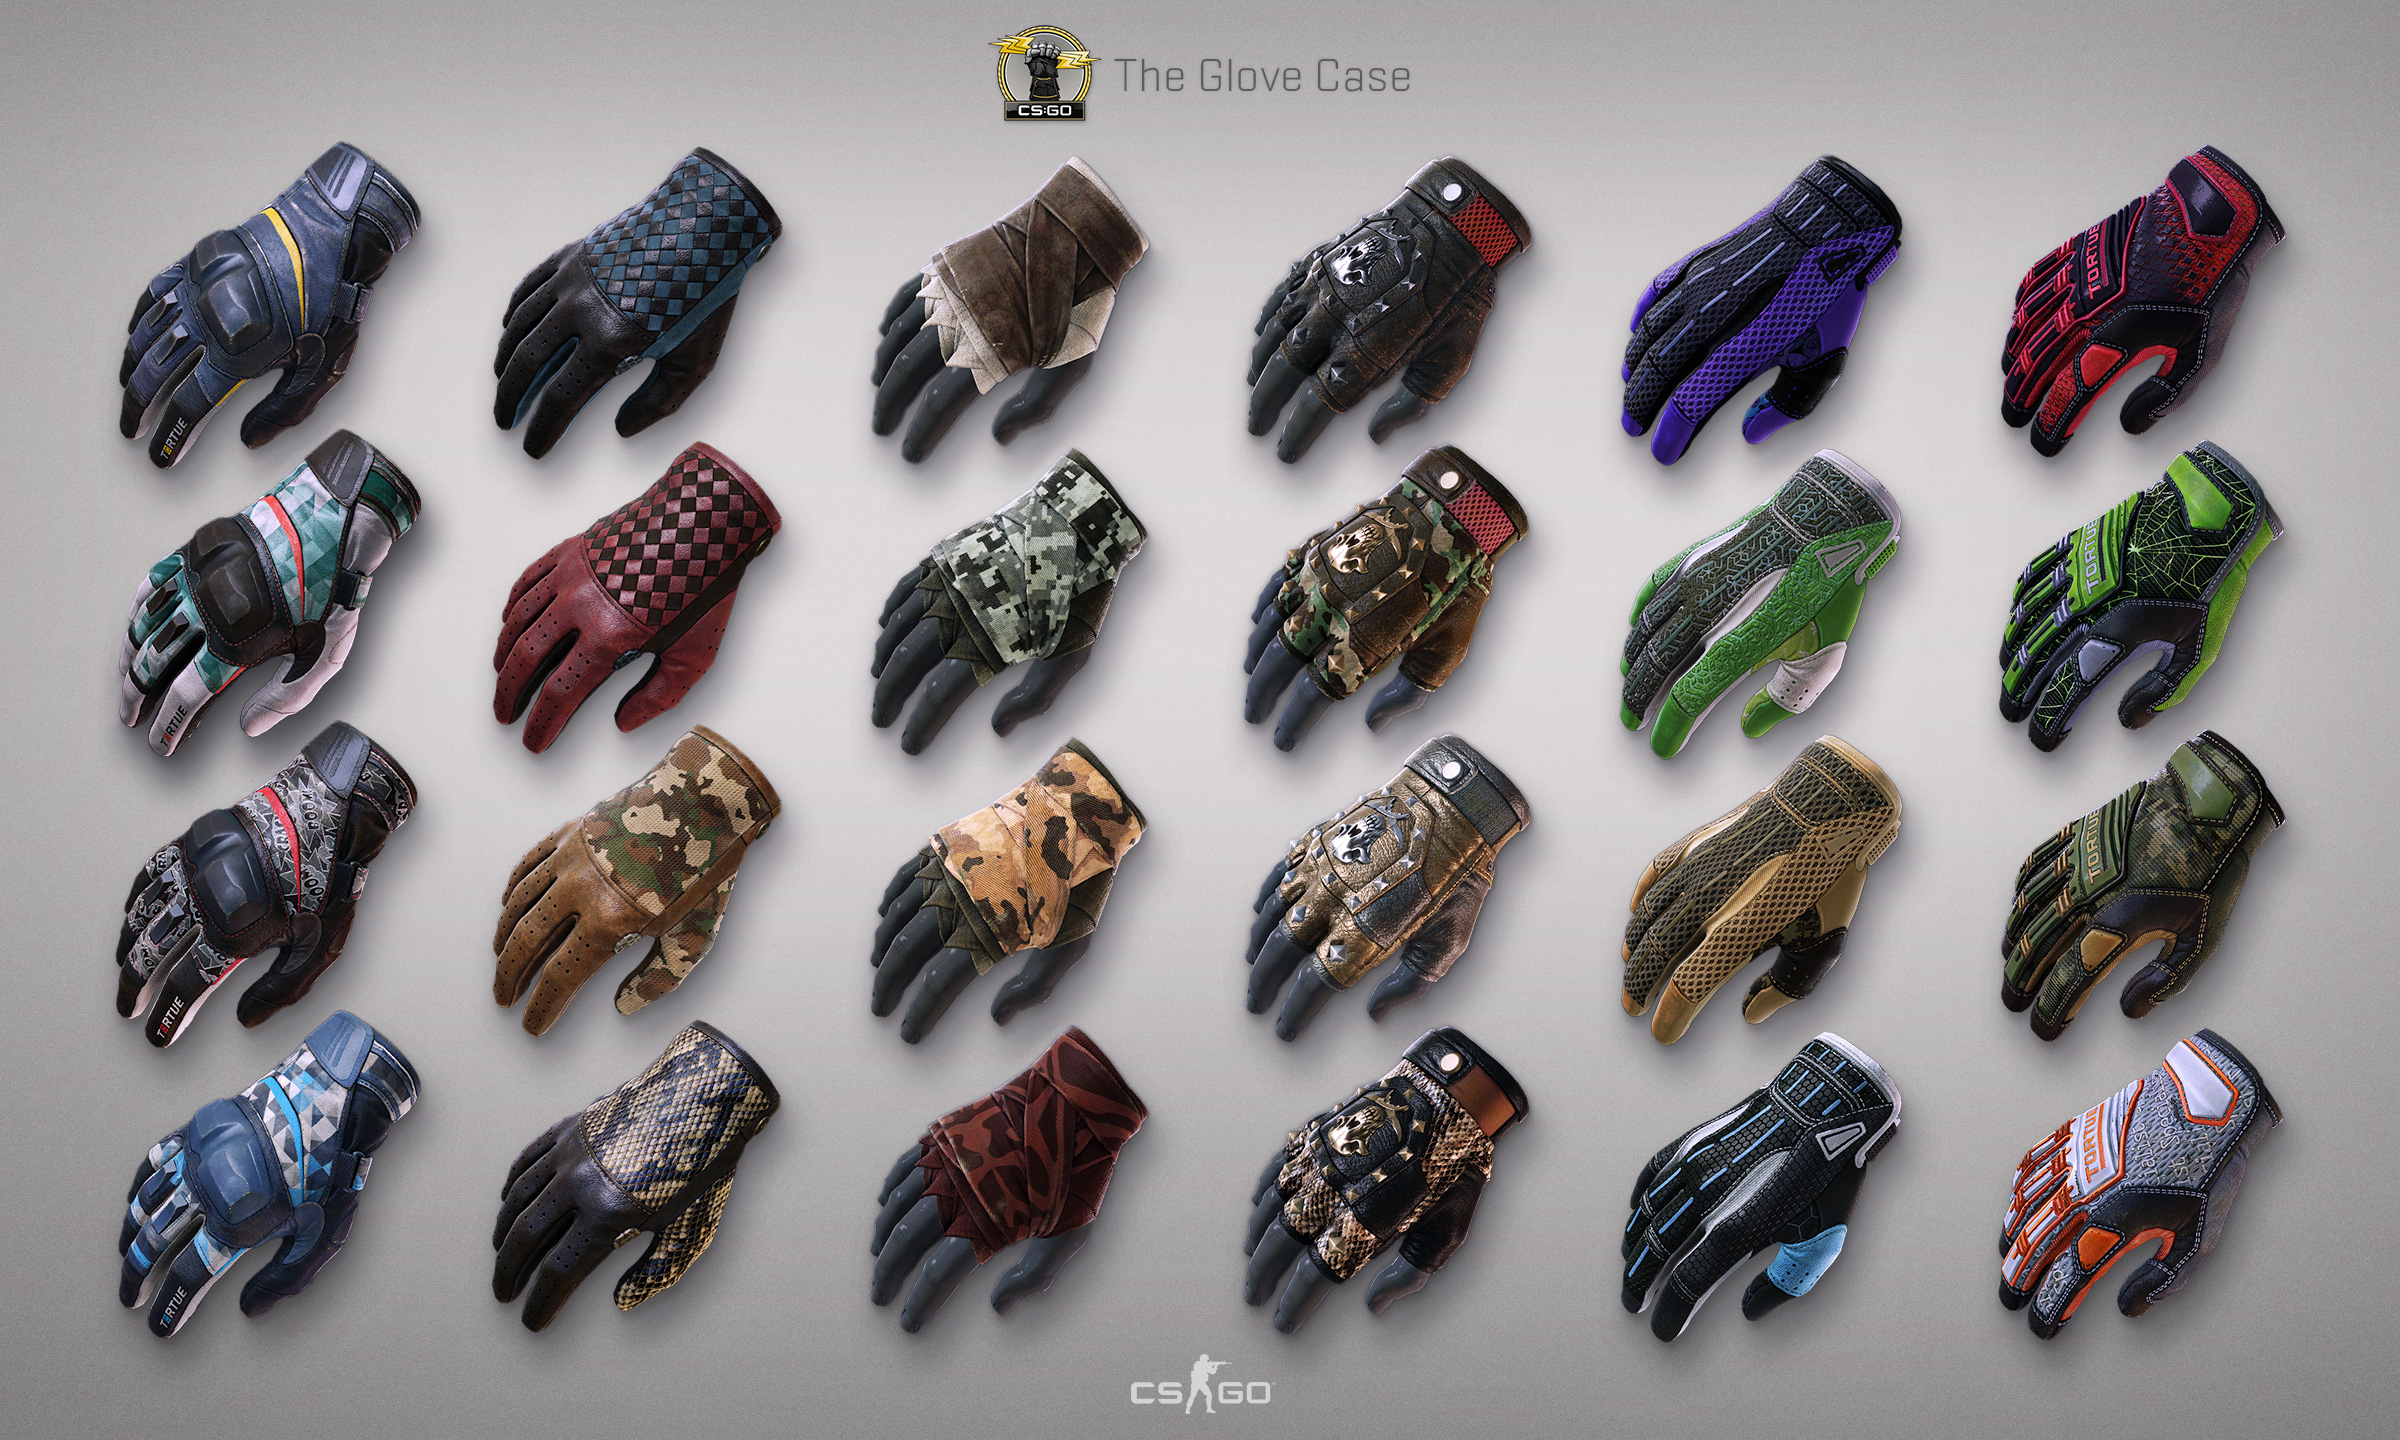 new_gloves_2016.jpg?v=4